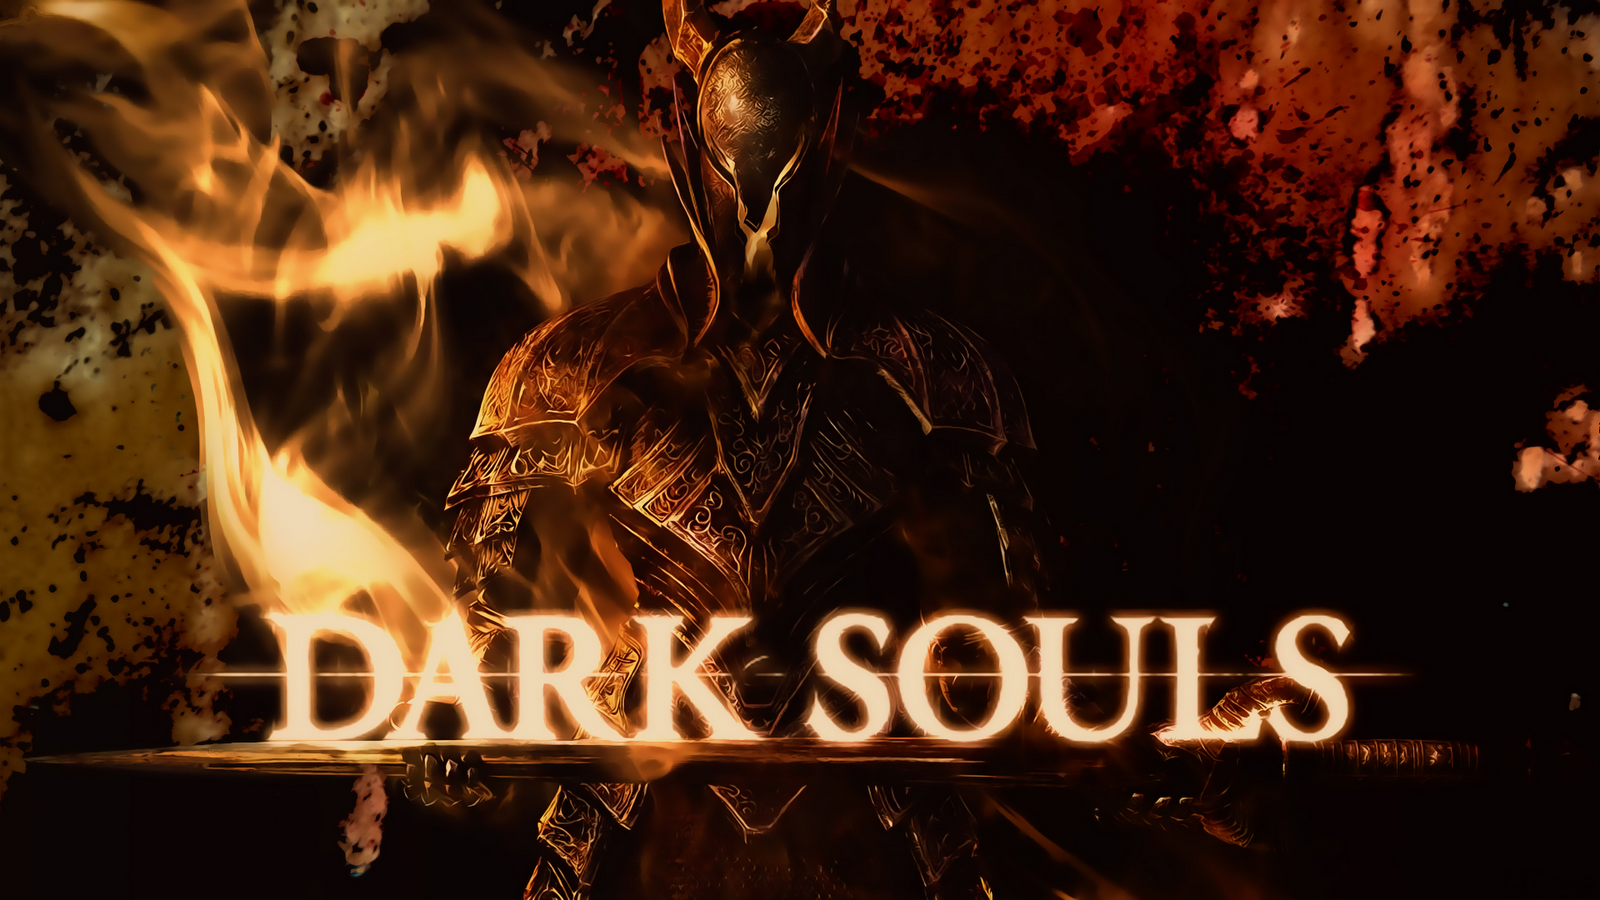 Free Download Dark Souls Hd Wallpapers And Dvd Cover Download